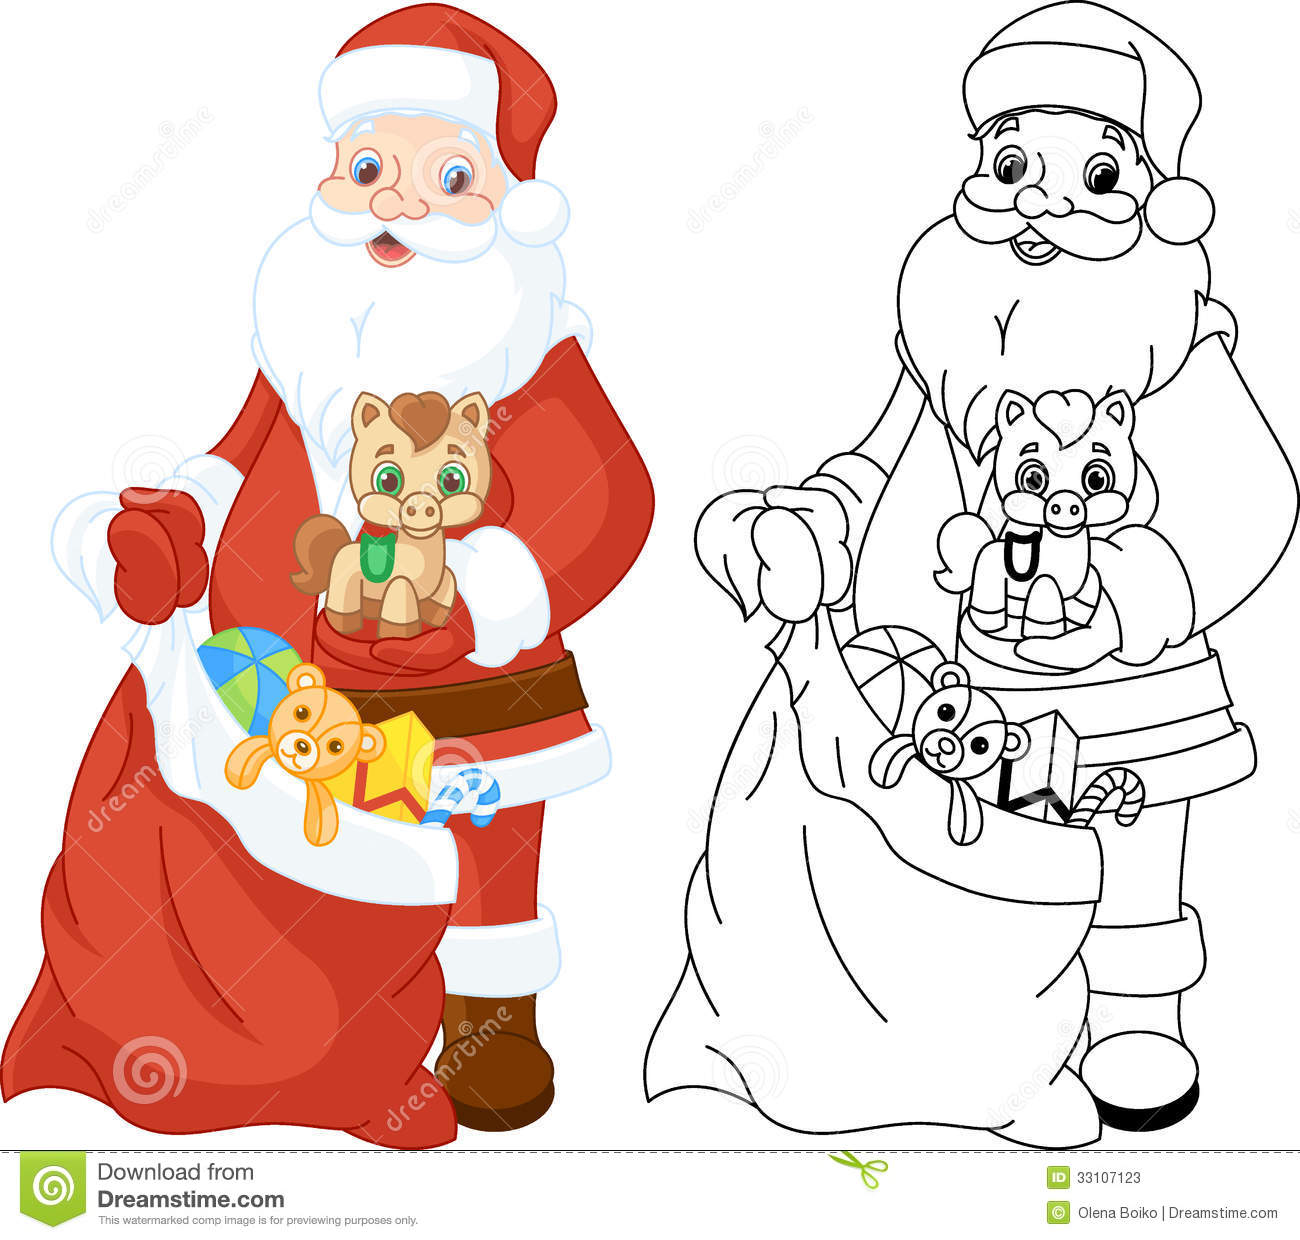 Exelent Santa Claus Colouring In Pictures Crest - Framing Coloring ...